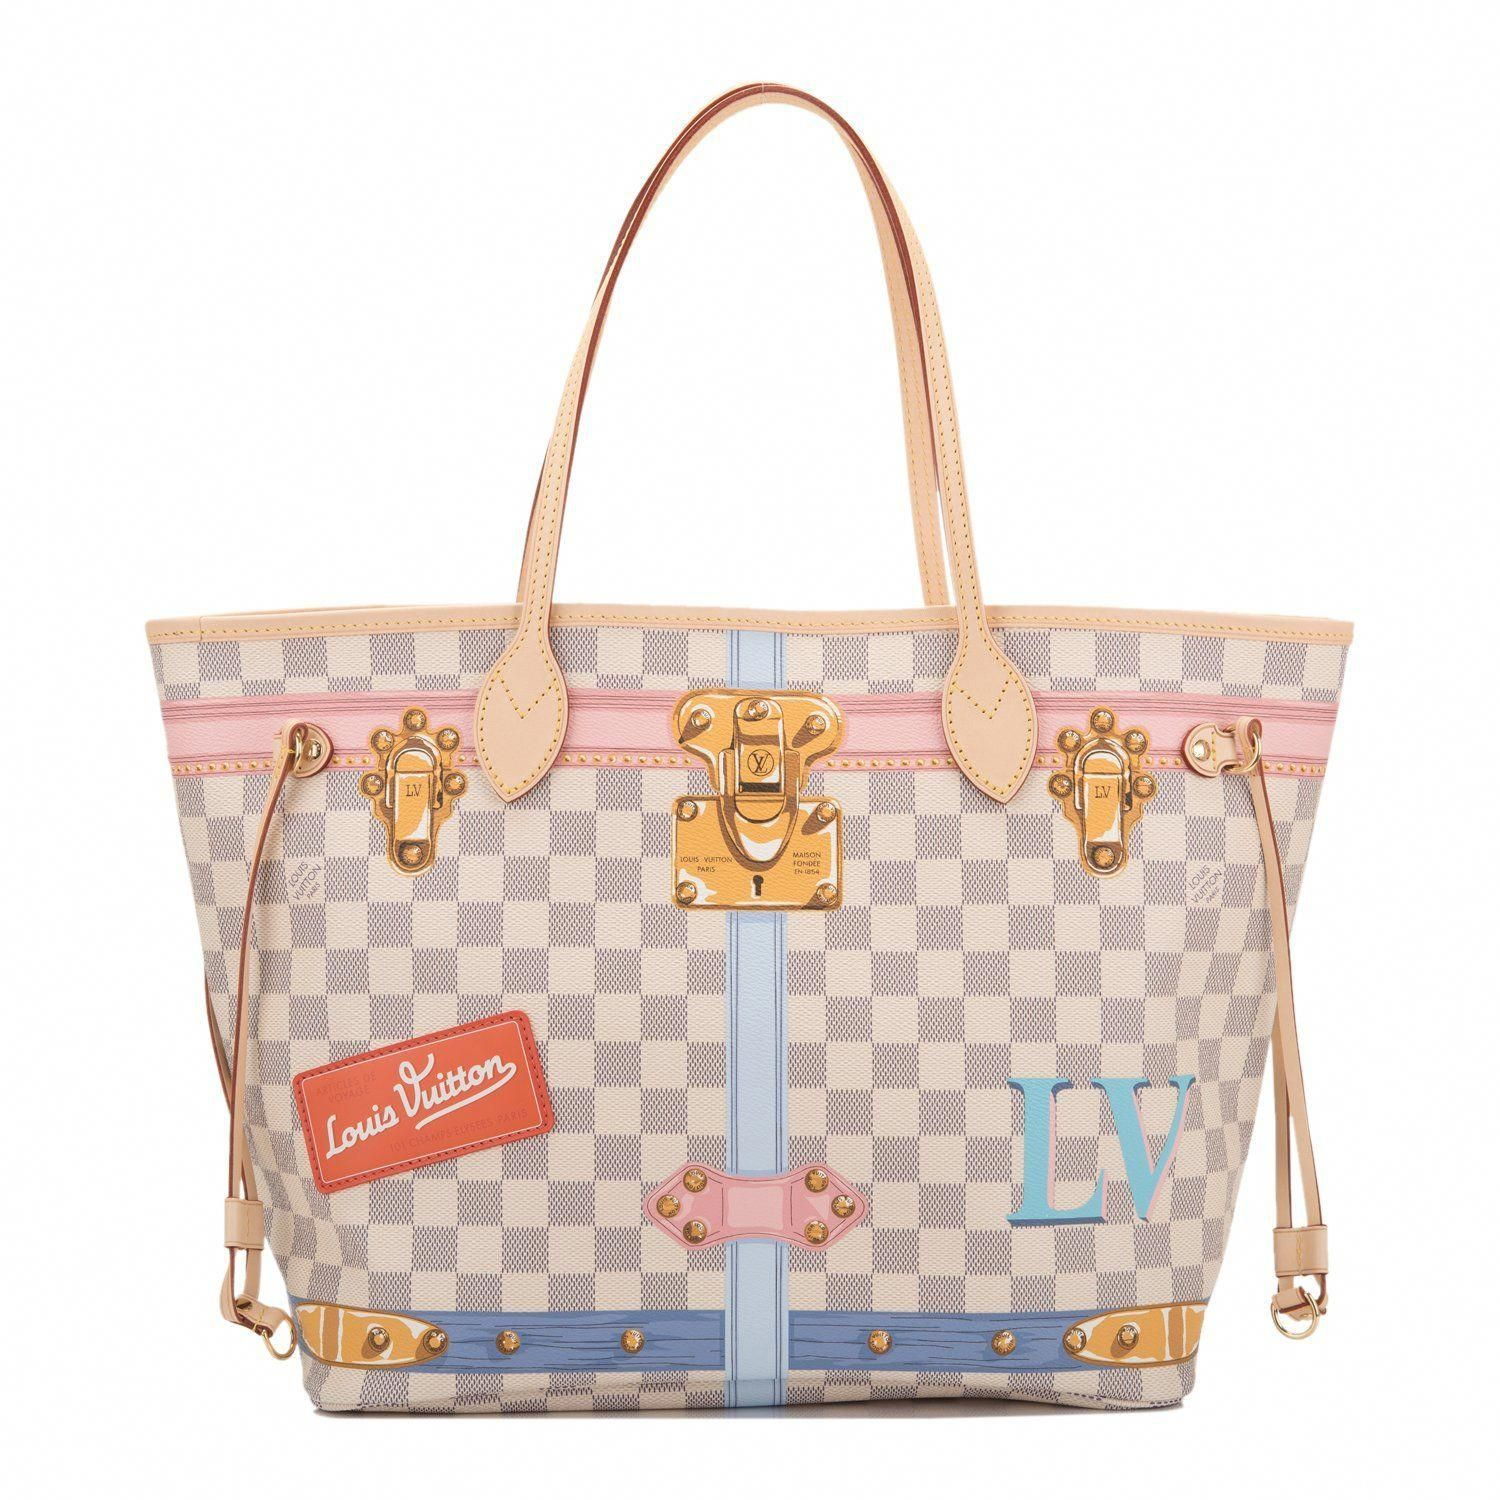 1e3fa36f2ae6 Louis Vuitton Damier Azur Summer Trunk Neverfull MM tote of coated canvas  with vachetta leather trim